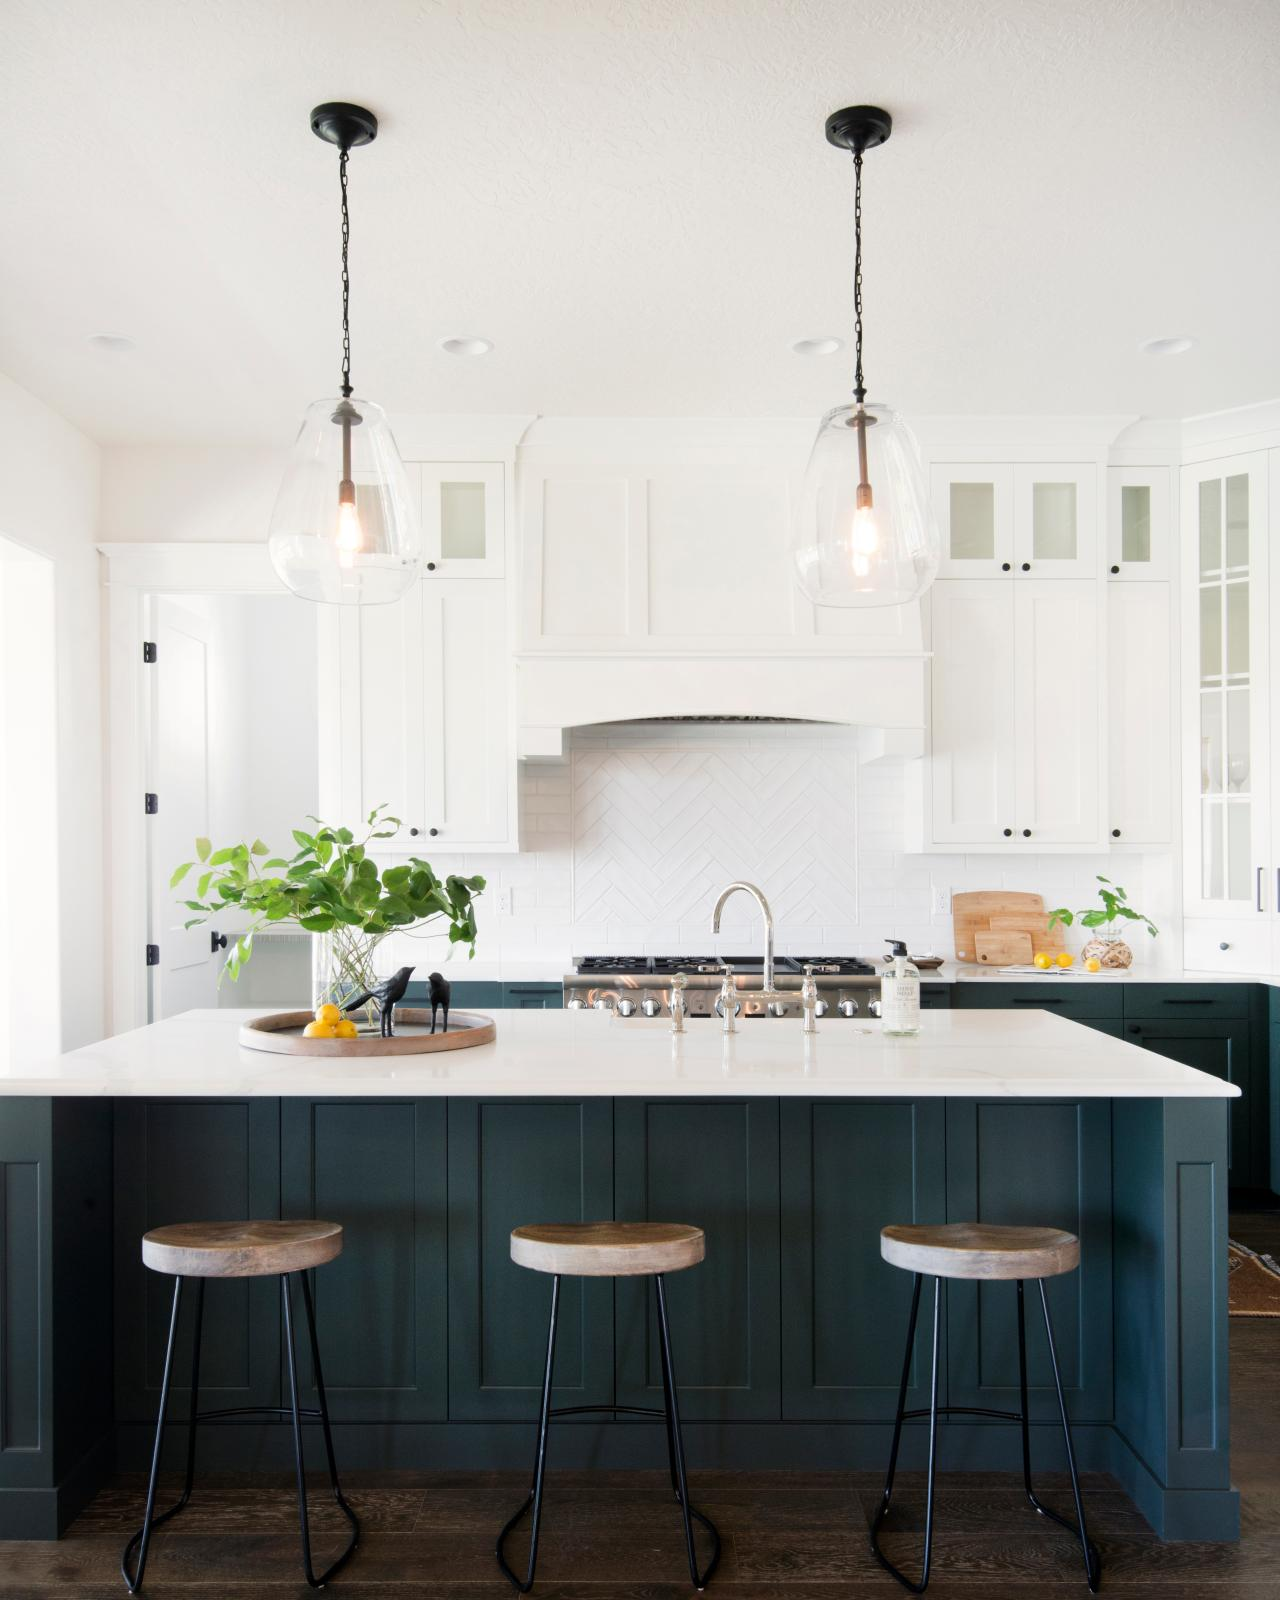 Repainting Kitchen Cabinets Pictures Ideas From Hgtv: 10 Blue-tiful Kitchen Cabinet Color Ideas